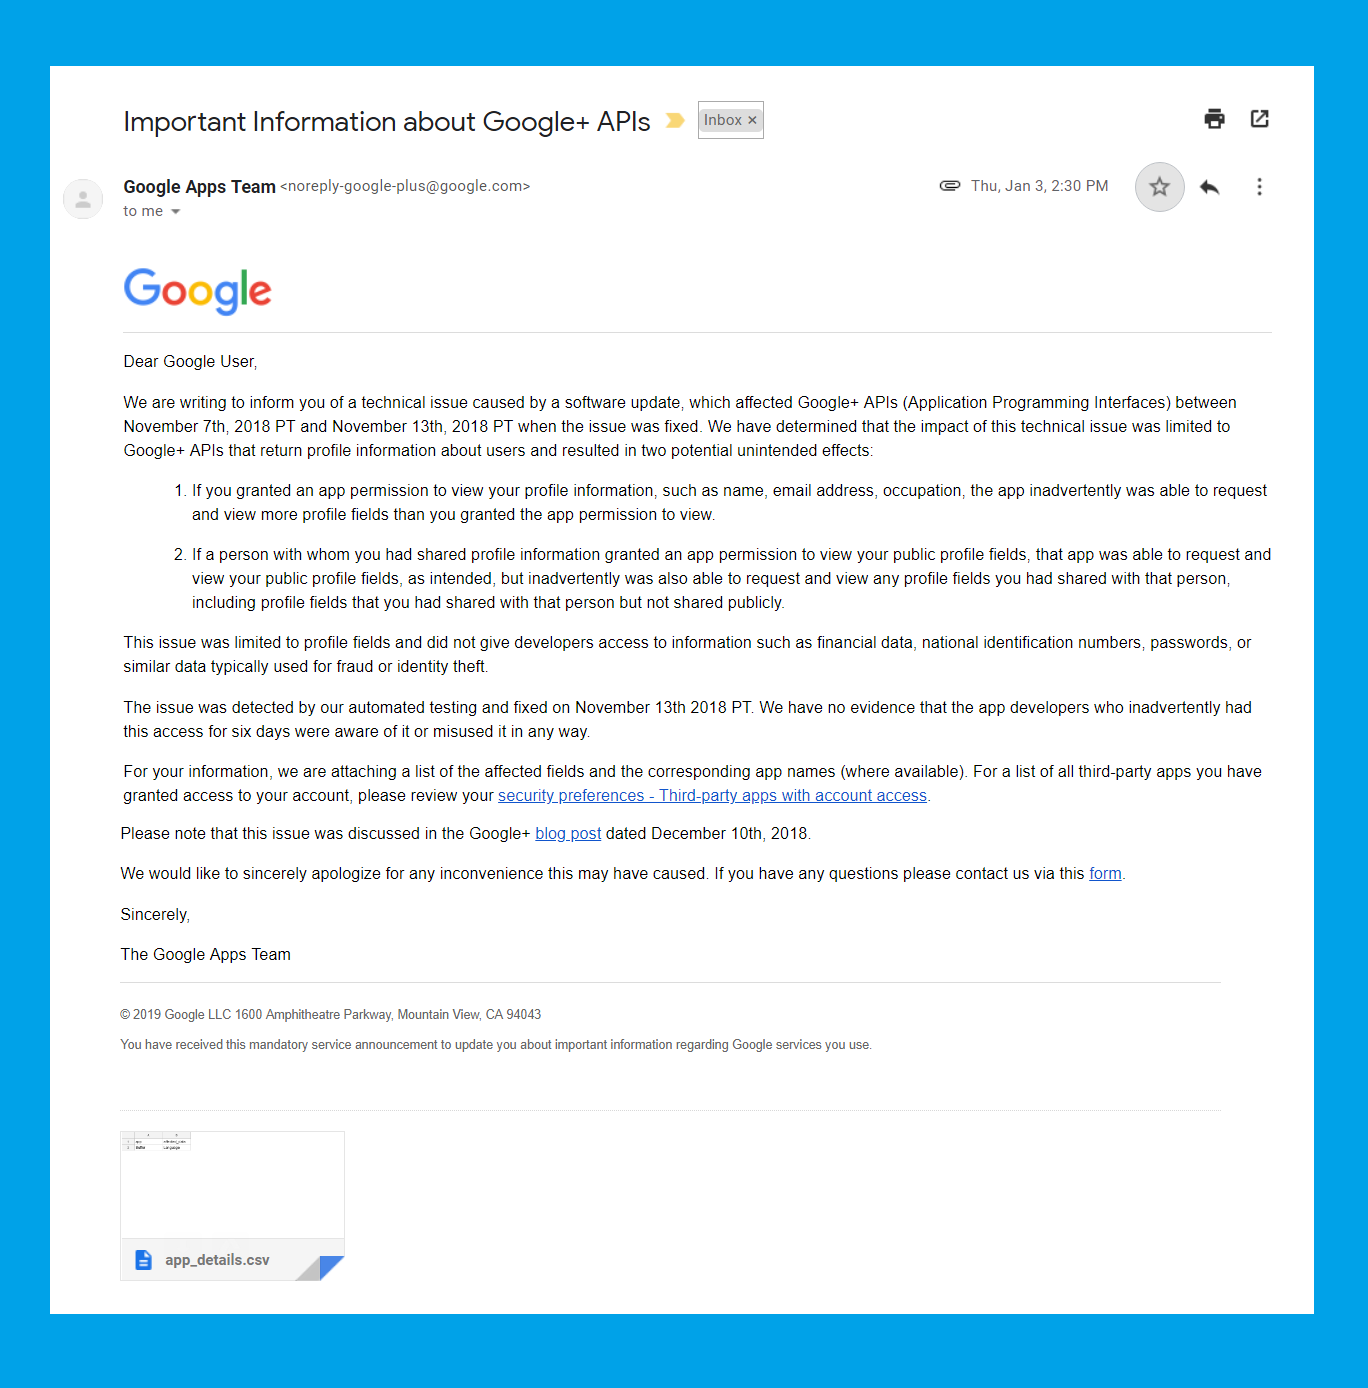 GooglePlus Data Breach: Ironically Affected Users Get Notified via (unpersonalized) Mails